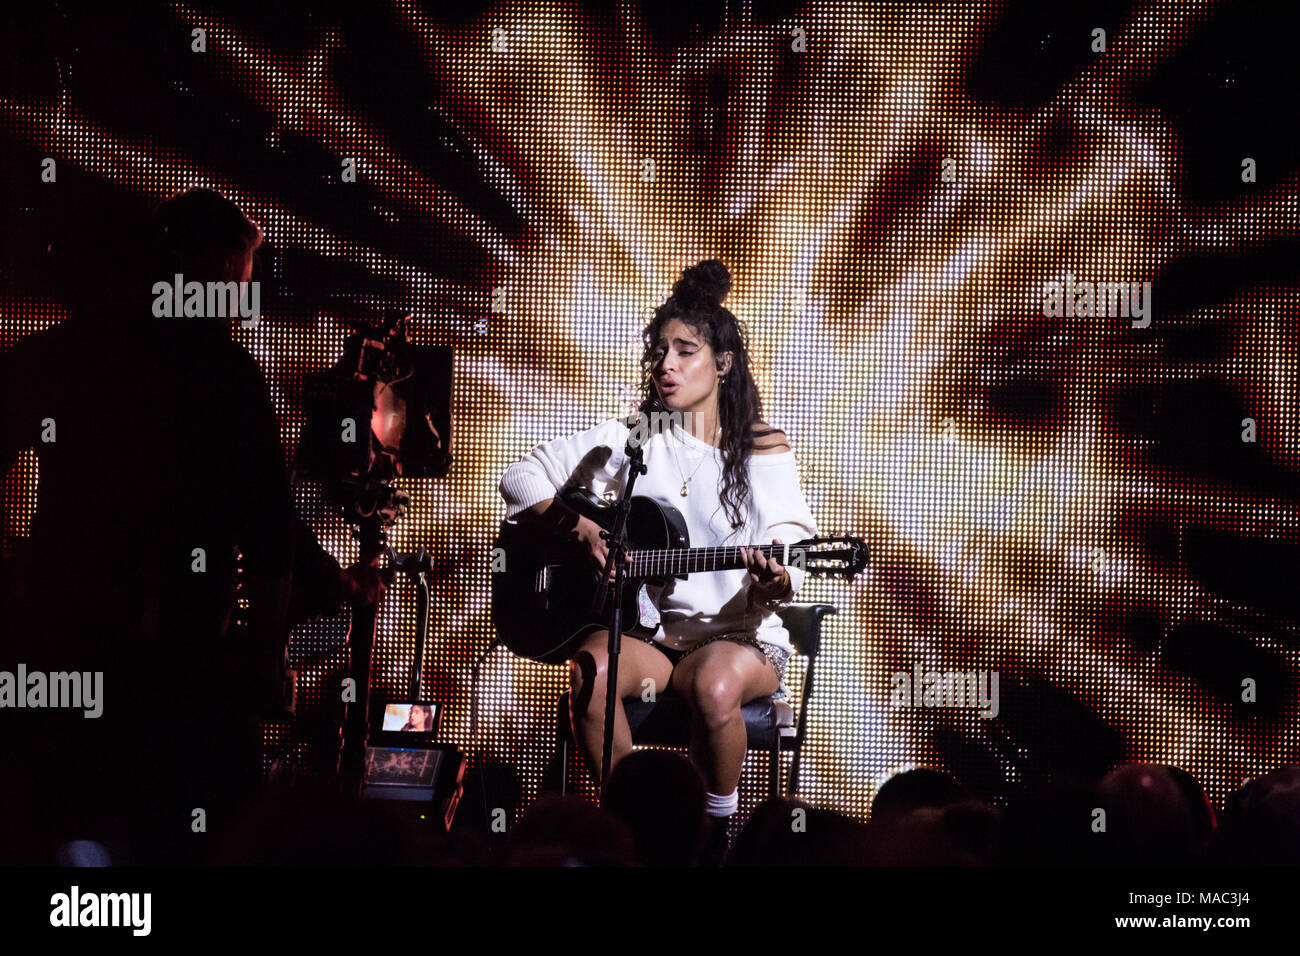 Vancouver, CANADA. 26th March, 2018. Jessie Reyez performs with Daniel Caeser at at the 2018 Juno Awards in Vancouver. Credit: Bobby Singh/fohphoto - Stock Image